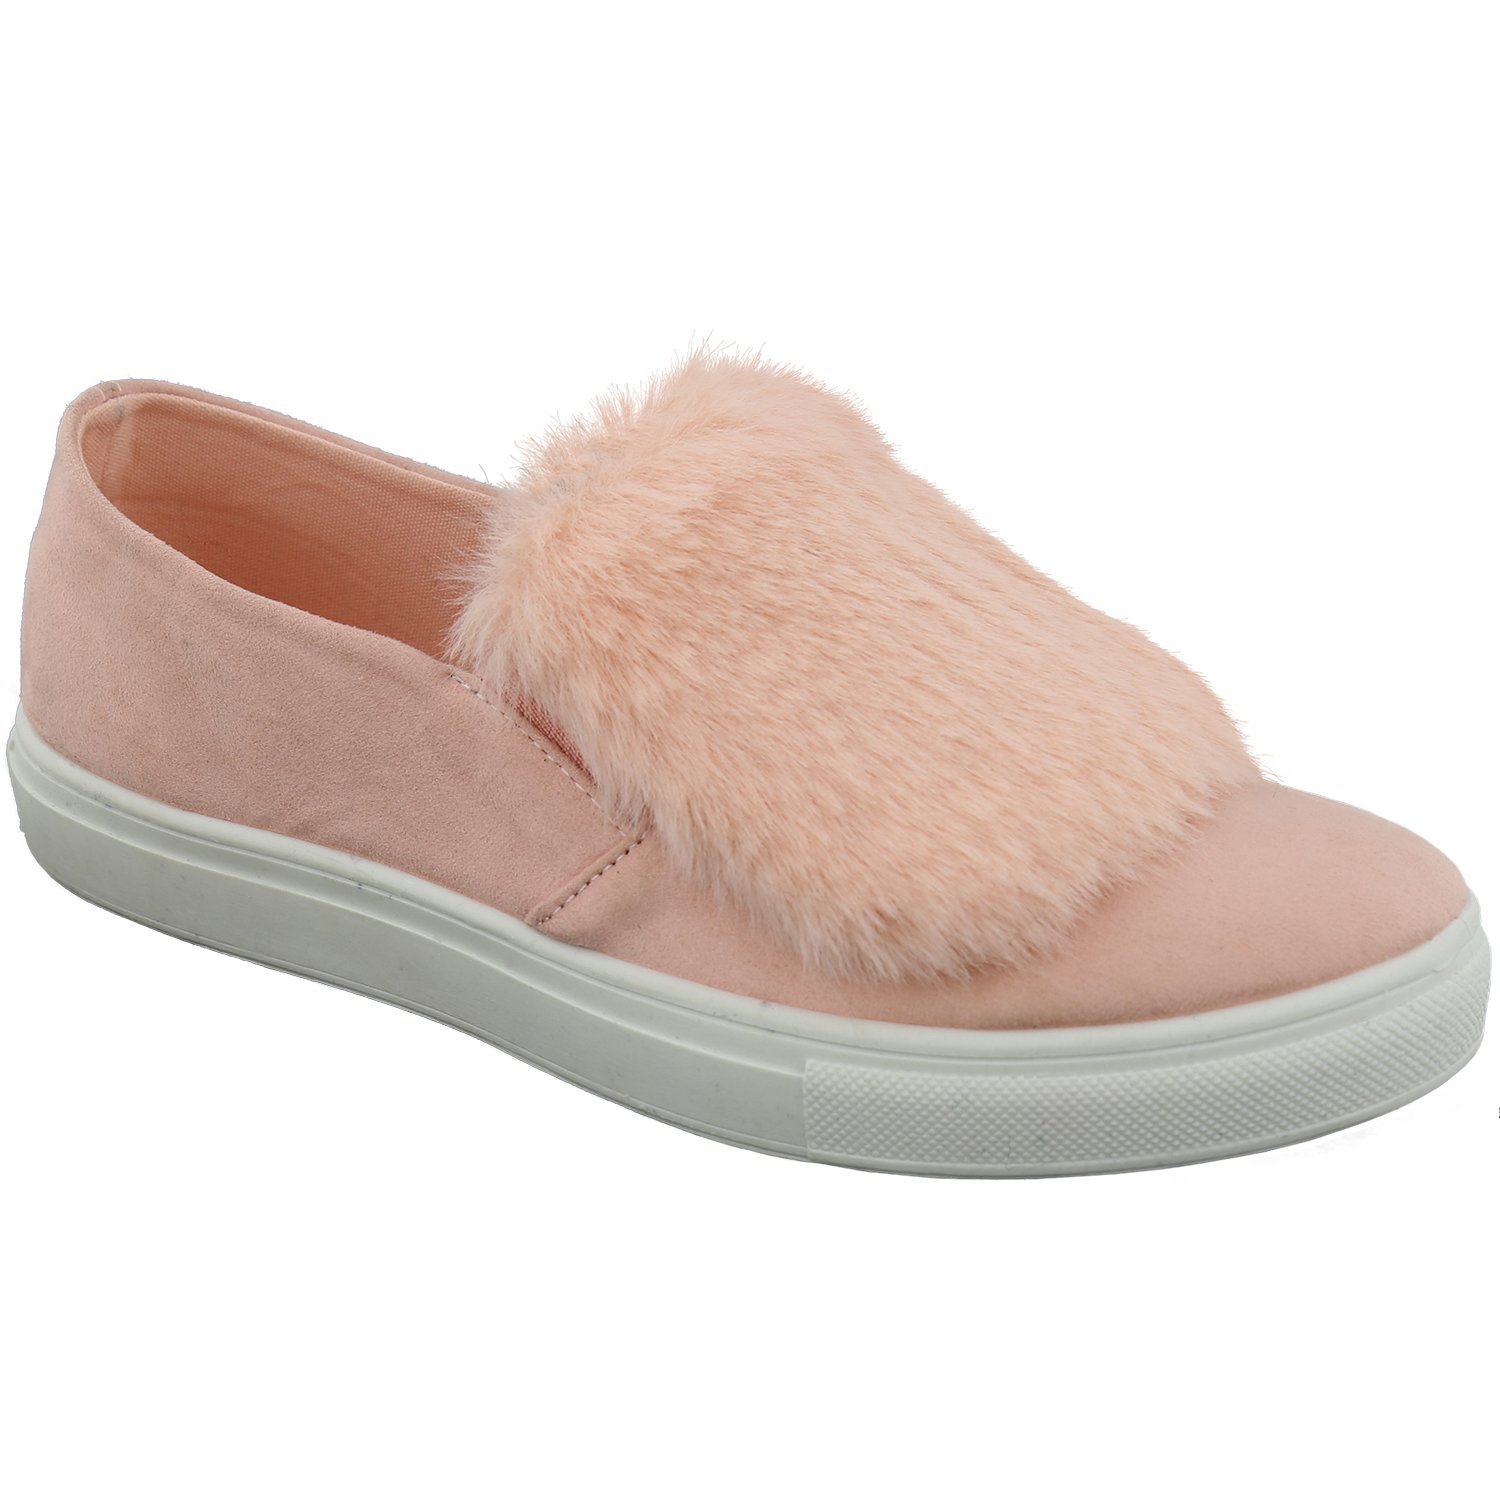 TravelNut Back to School Sale Kenna Classic Slip On Casual Skateboard Sneakers for Women (Assorted Colors) B073P3XM9D 7.5 M US|Marianne Pink